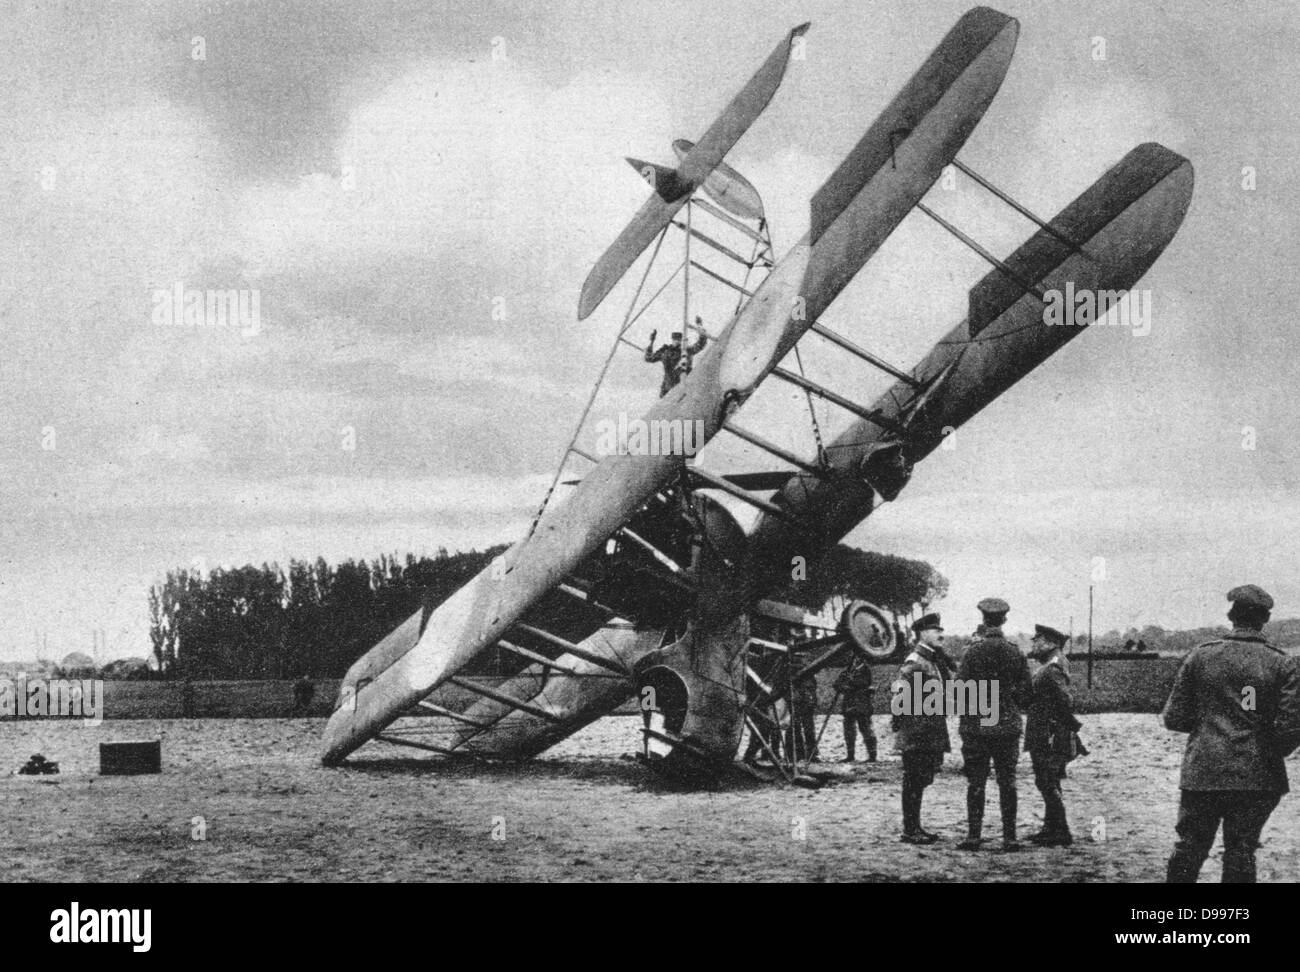 World War I 1914-1918:  A British Vickers biplane that had crashed near Lille, France, being examined by Germans, Stock Photo